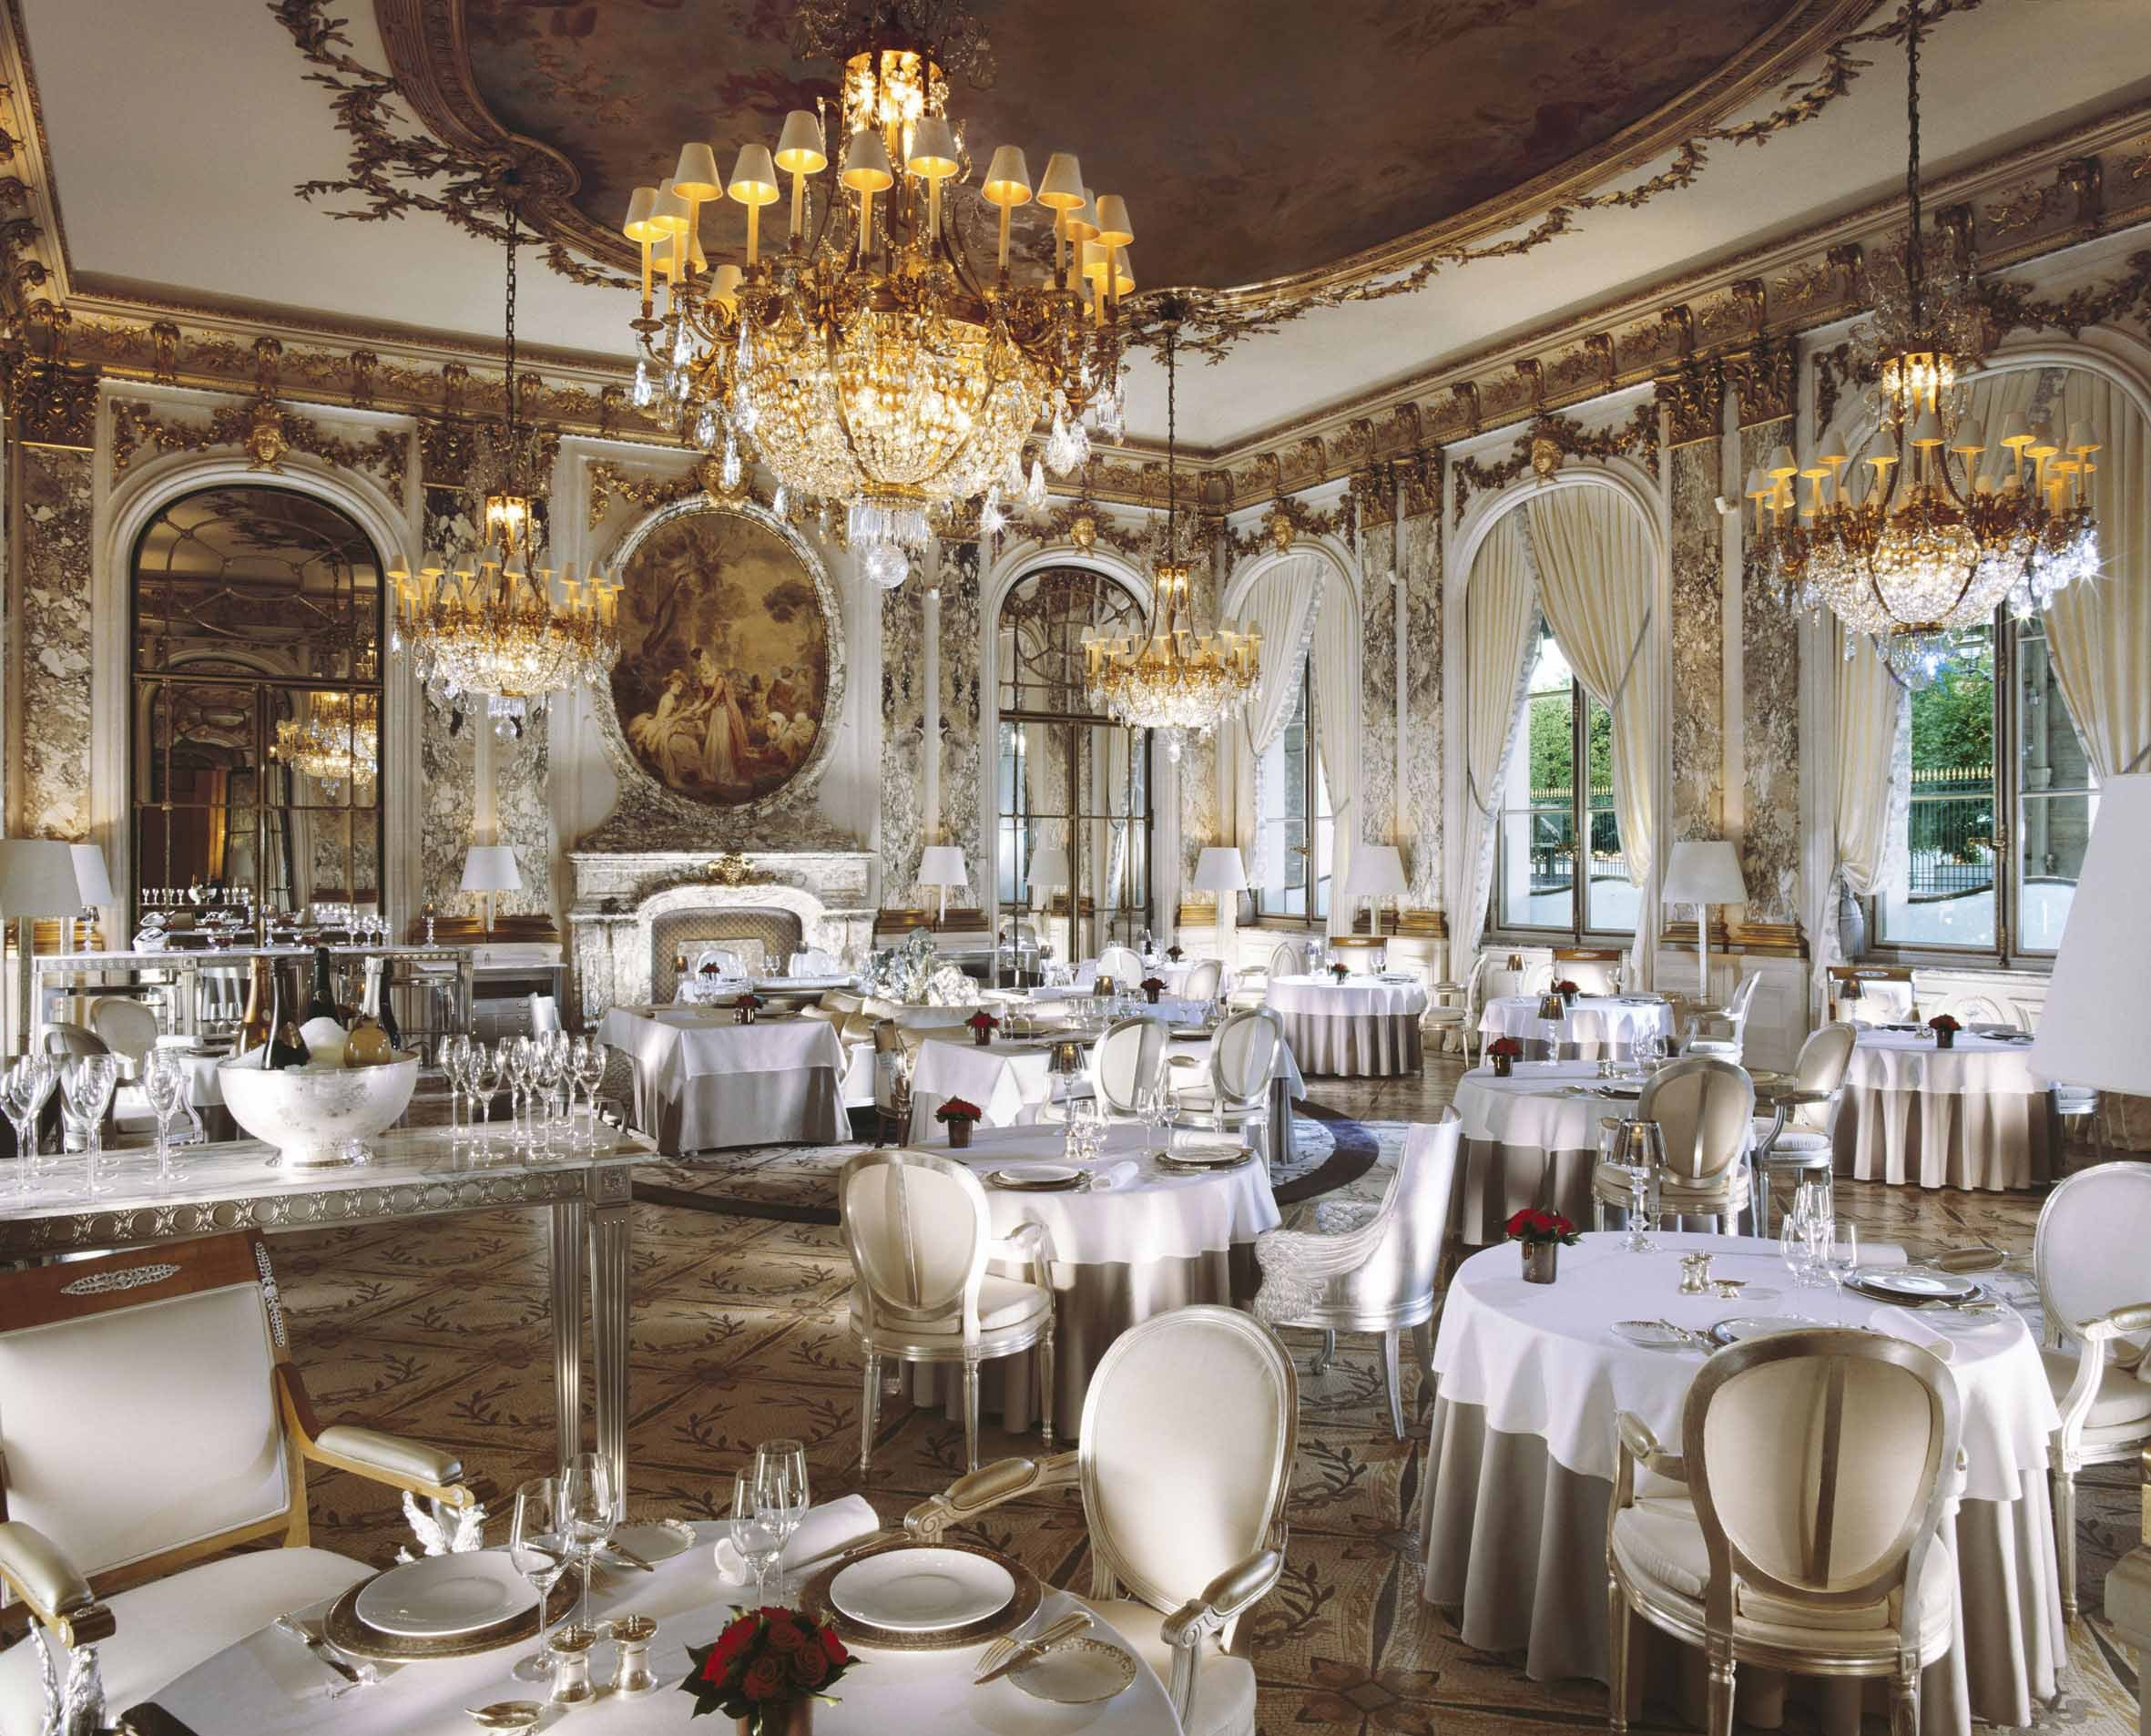 Le Meurice Announces The Arrival Of Alain Ducasse In  : 153047033 from www.hospitalitynet.org size 2362 x 1906 jpeg 750kB